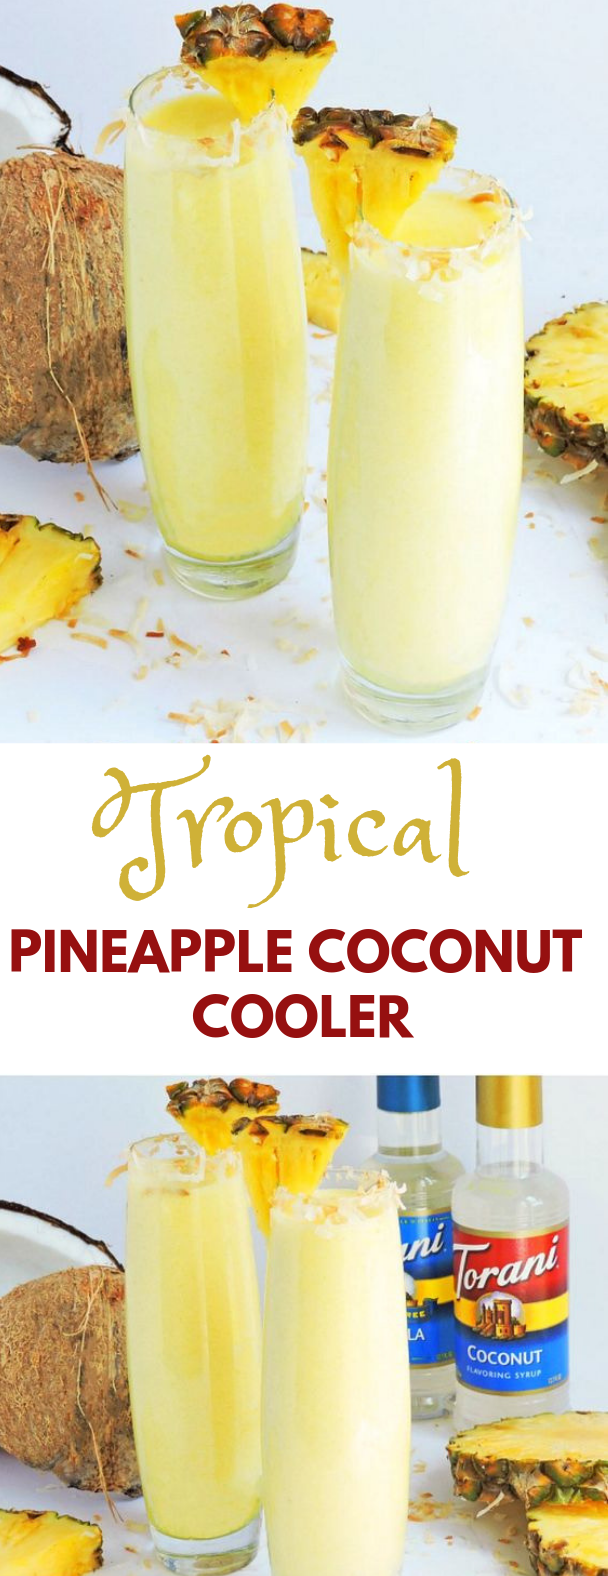 Tropical Pineapple Coconut Cooler #tropical #drink